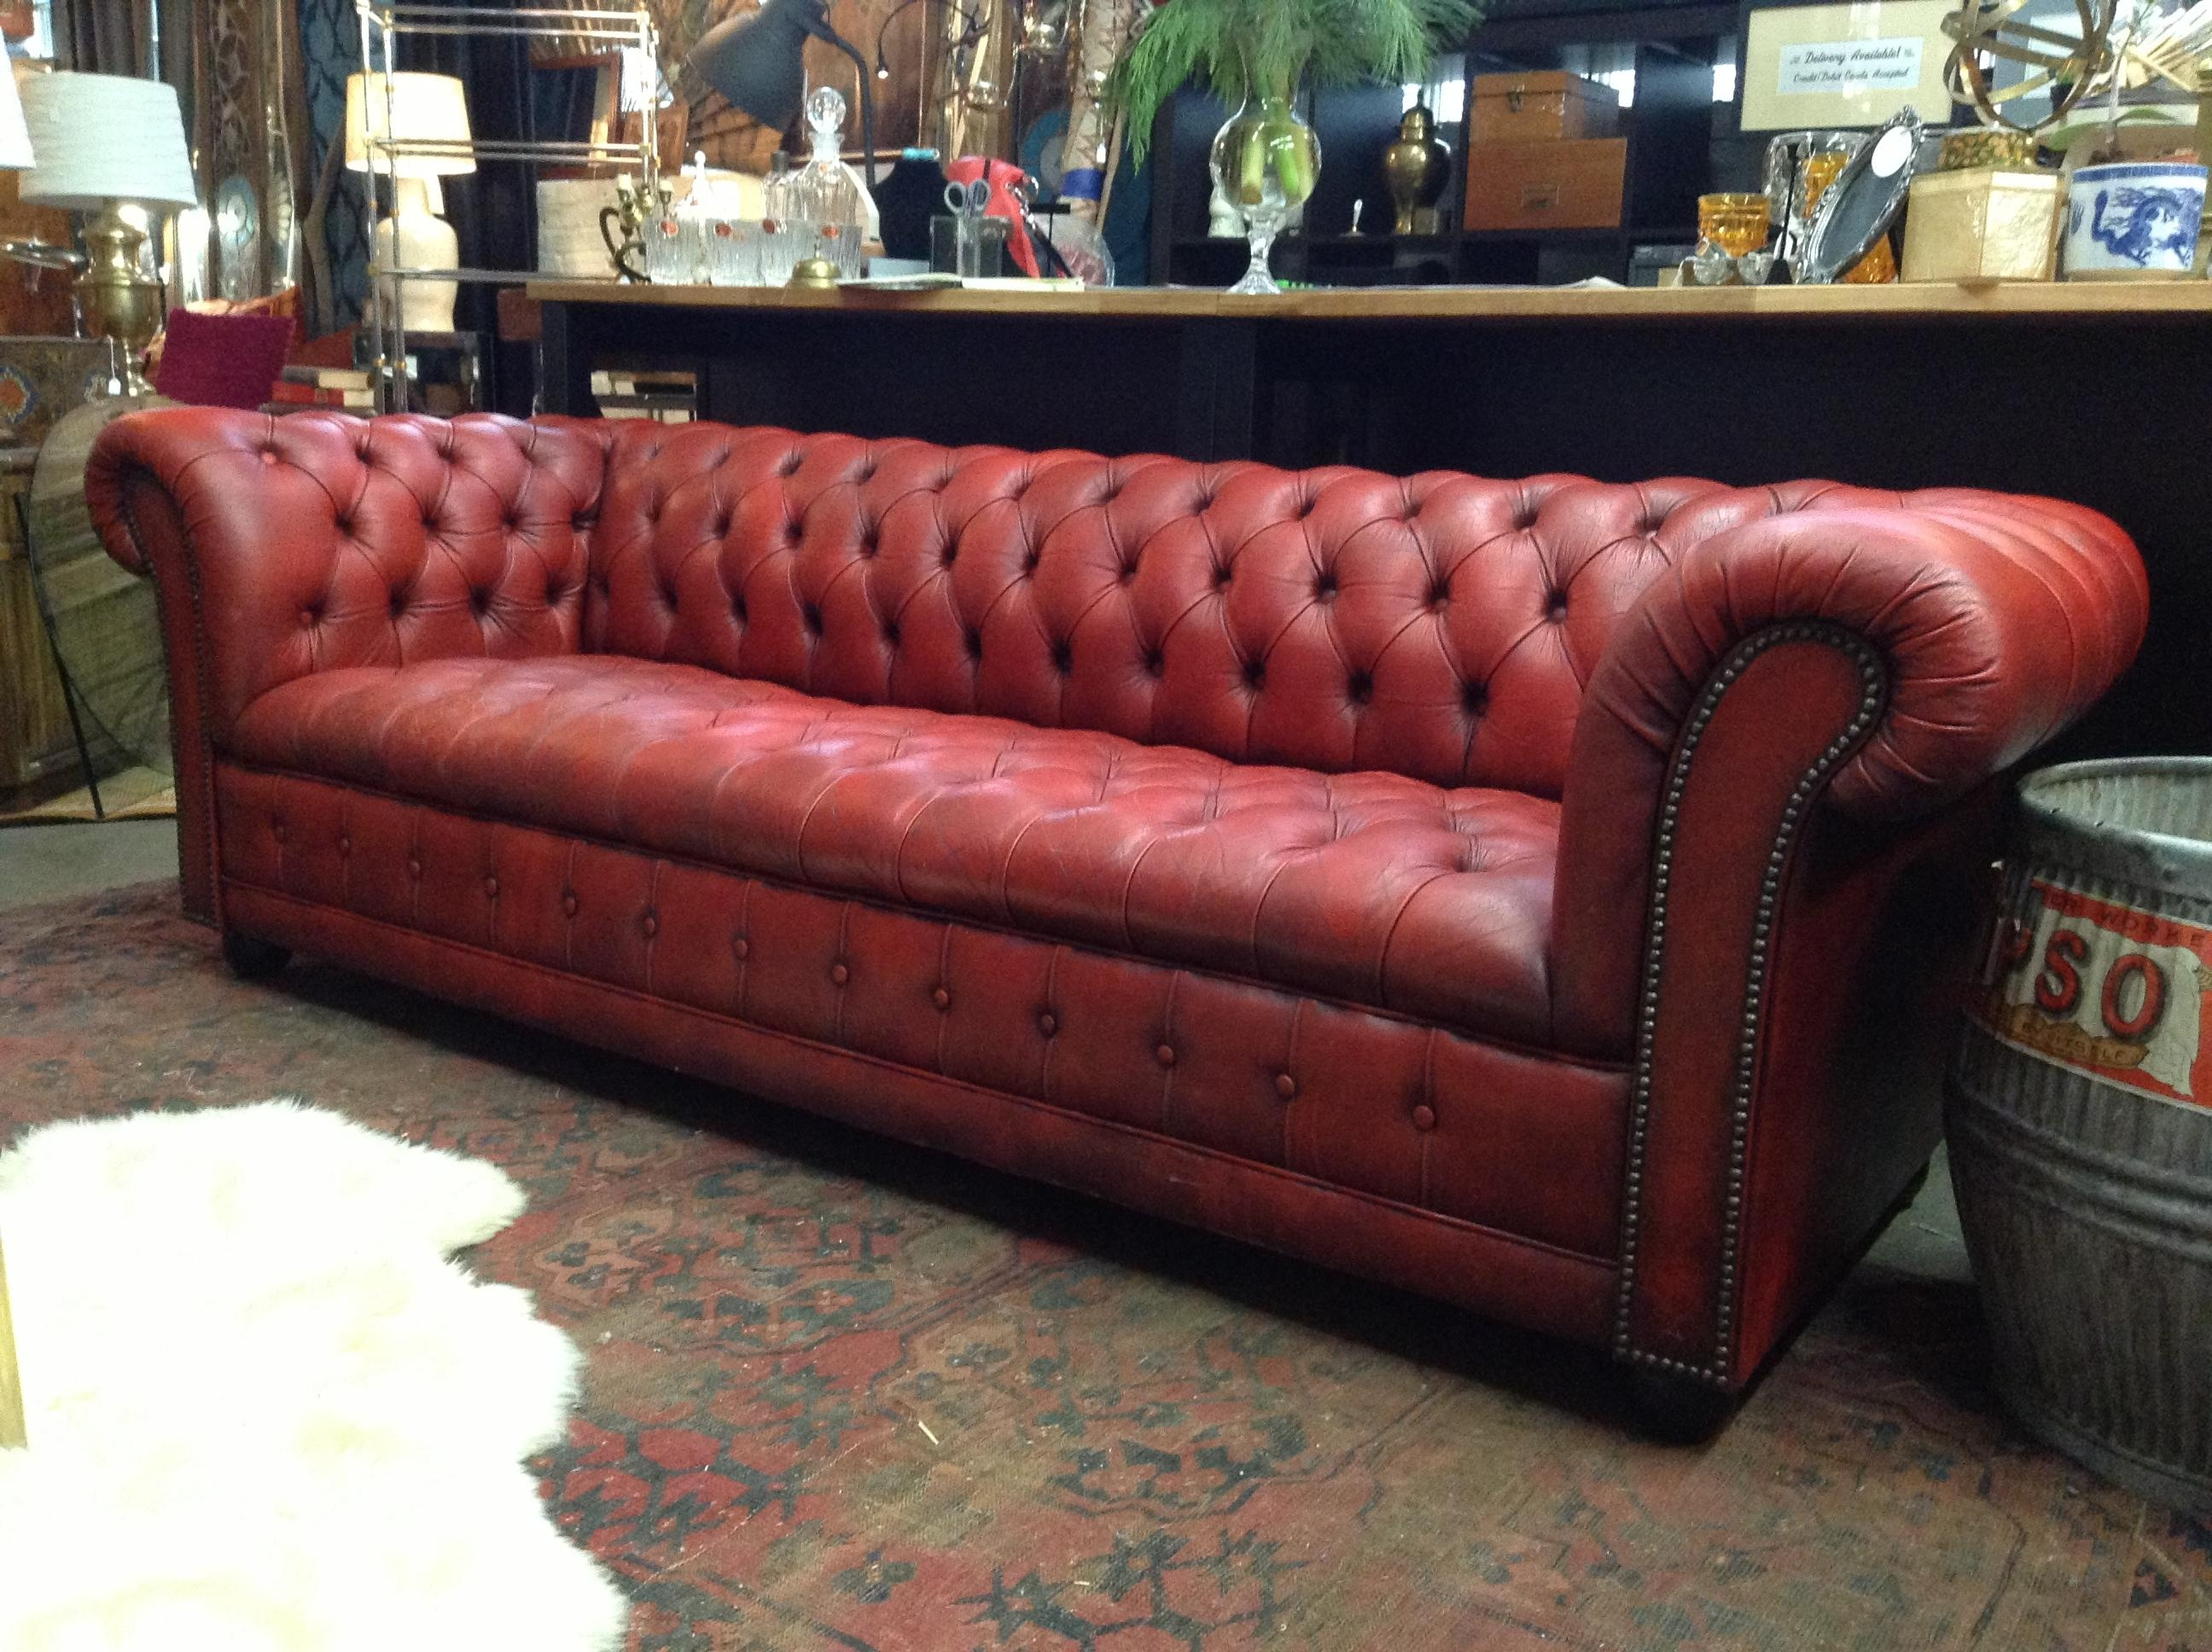 Antique Leather Sofa Bed | Tehranmix Decoration Within Victorian Leather Sofas (View 15 of 20)